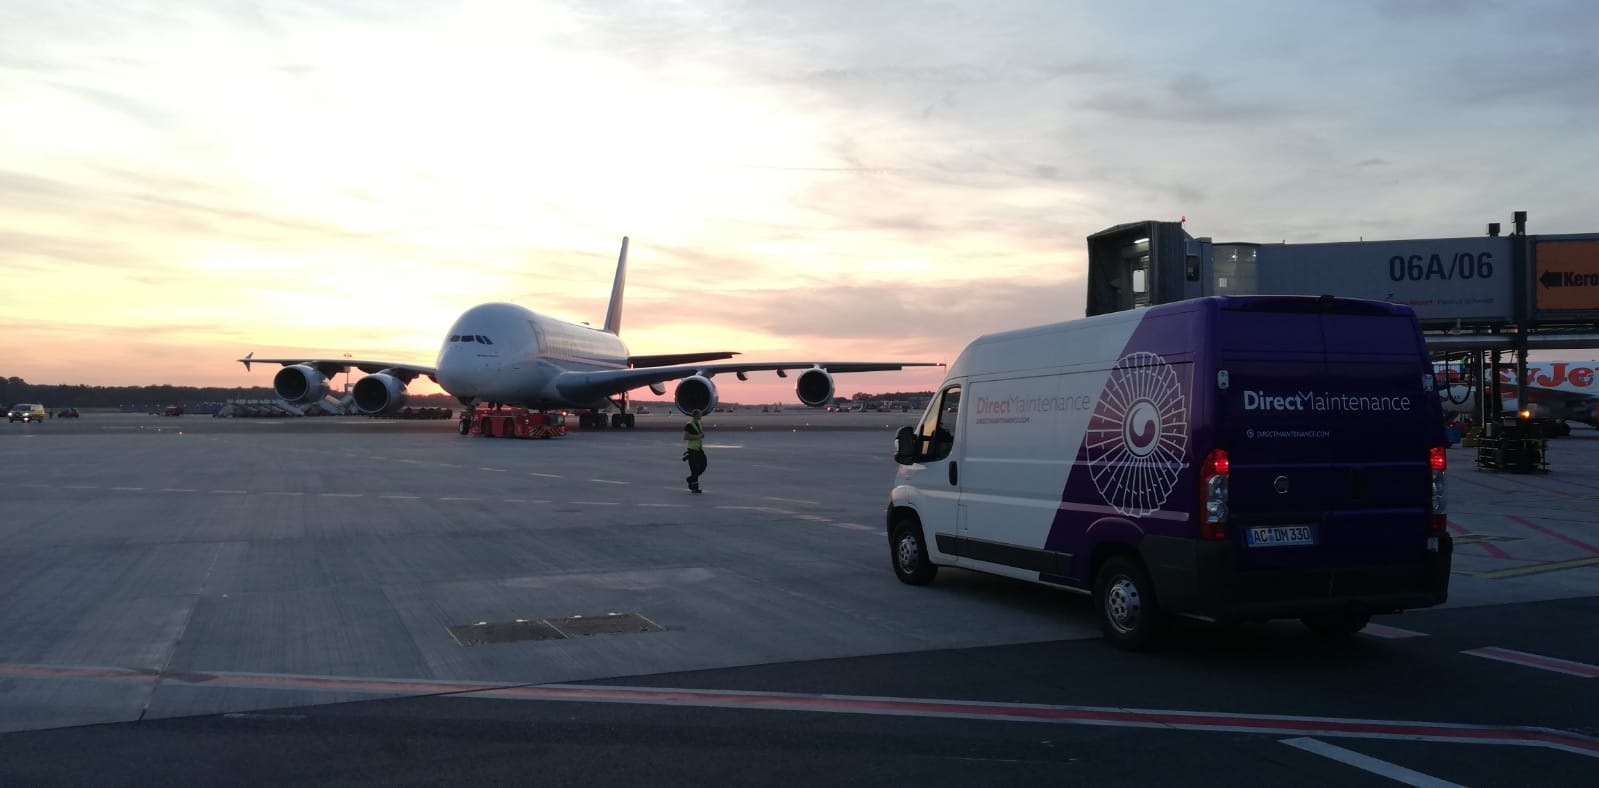 Direct Maintenance welcomes the first A380 at Dusseldorf (DUS) station